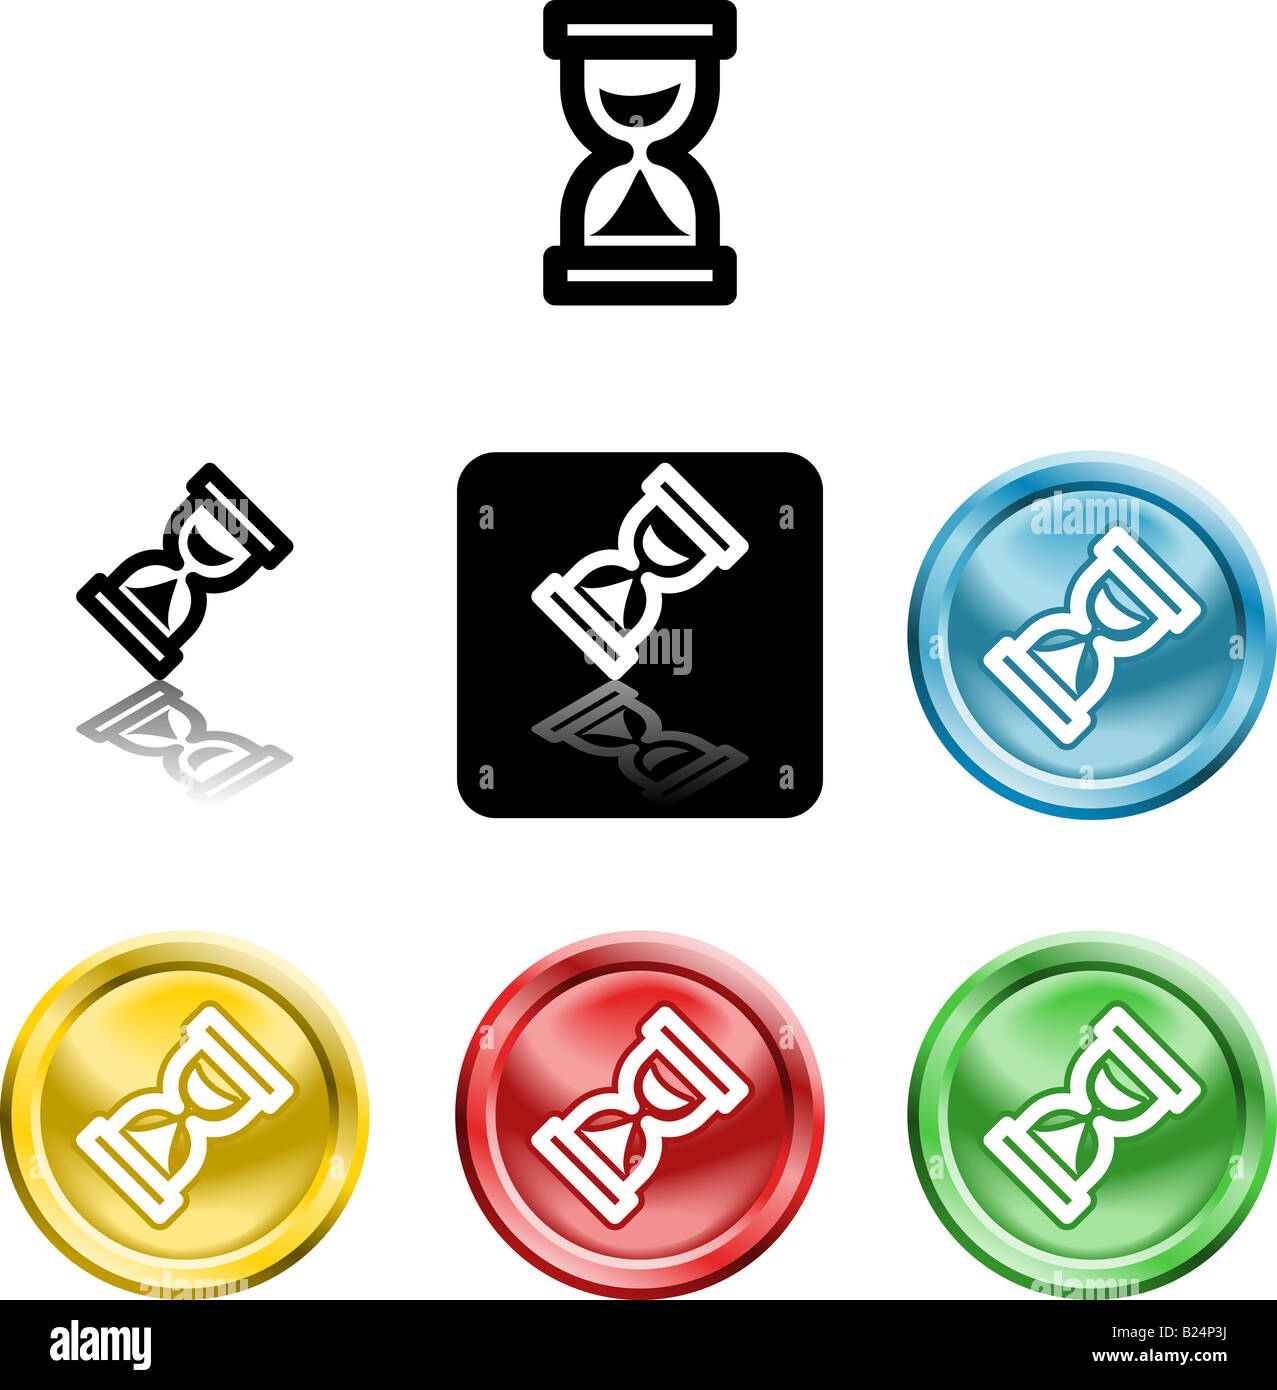 Several versions of an icon symbol of a stylised hour glass - Stock Image